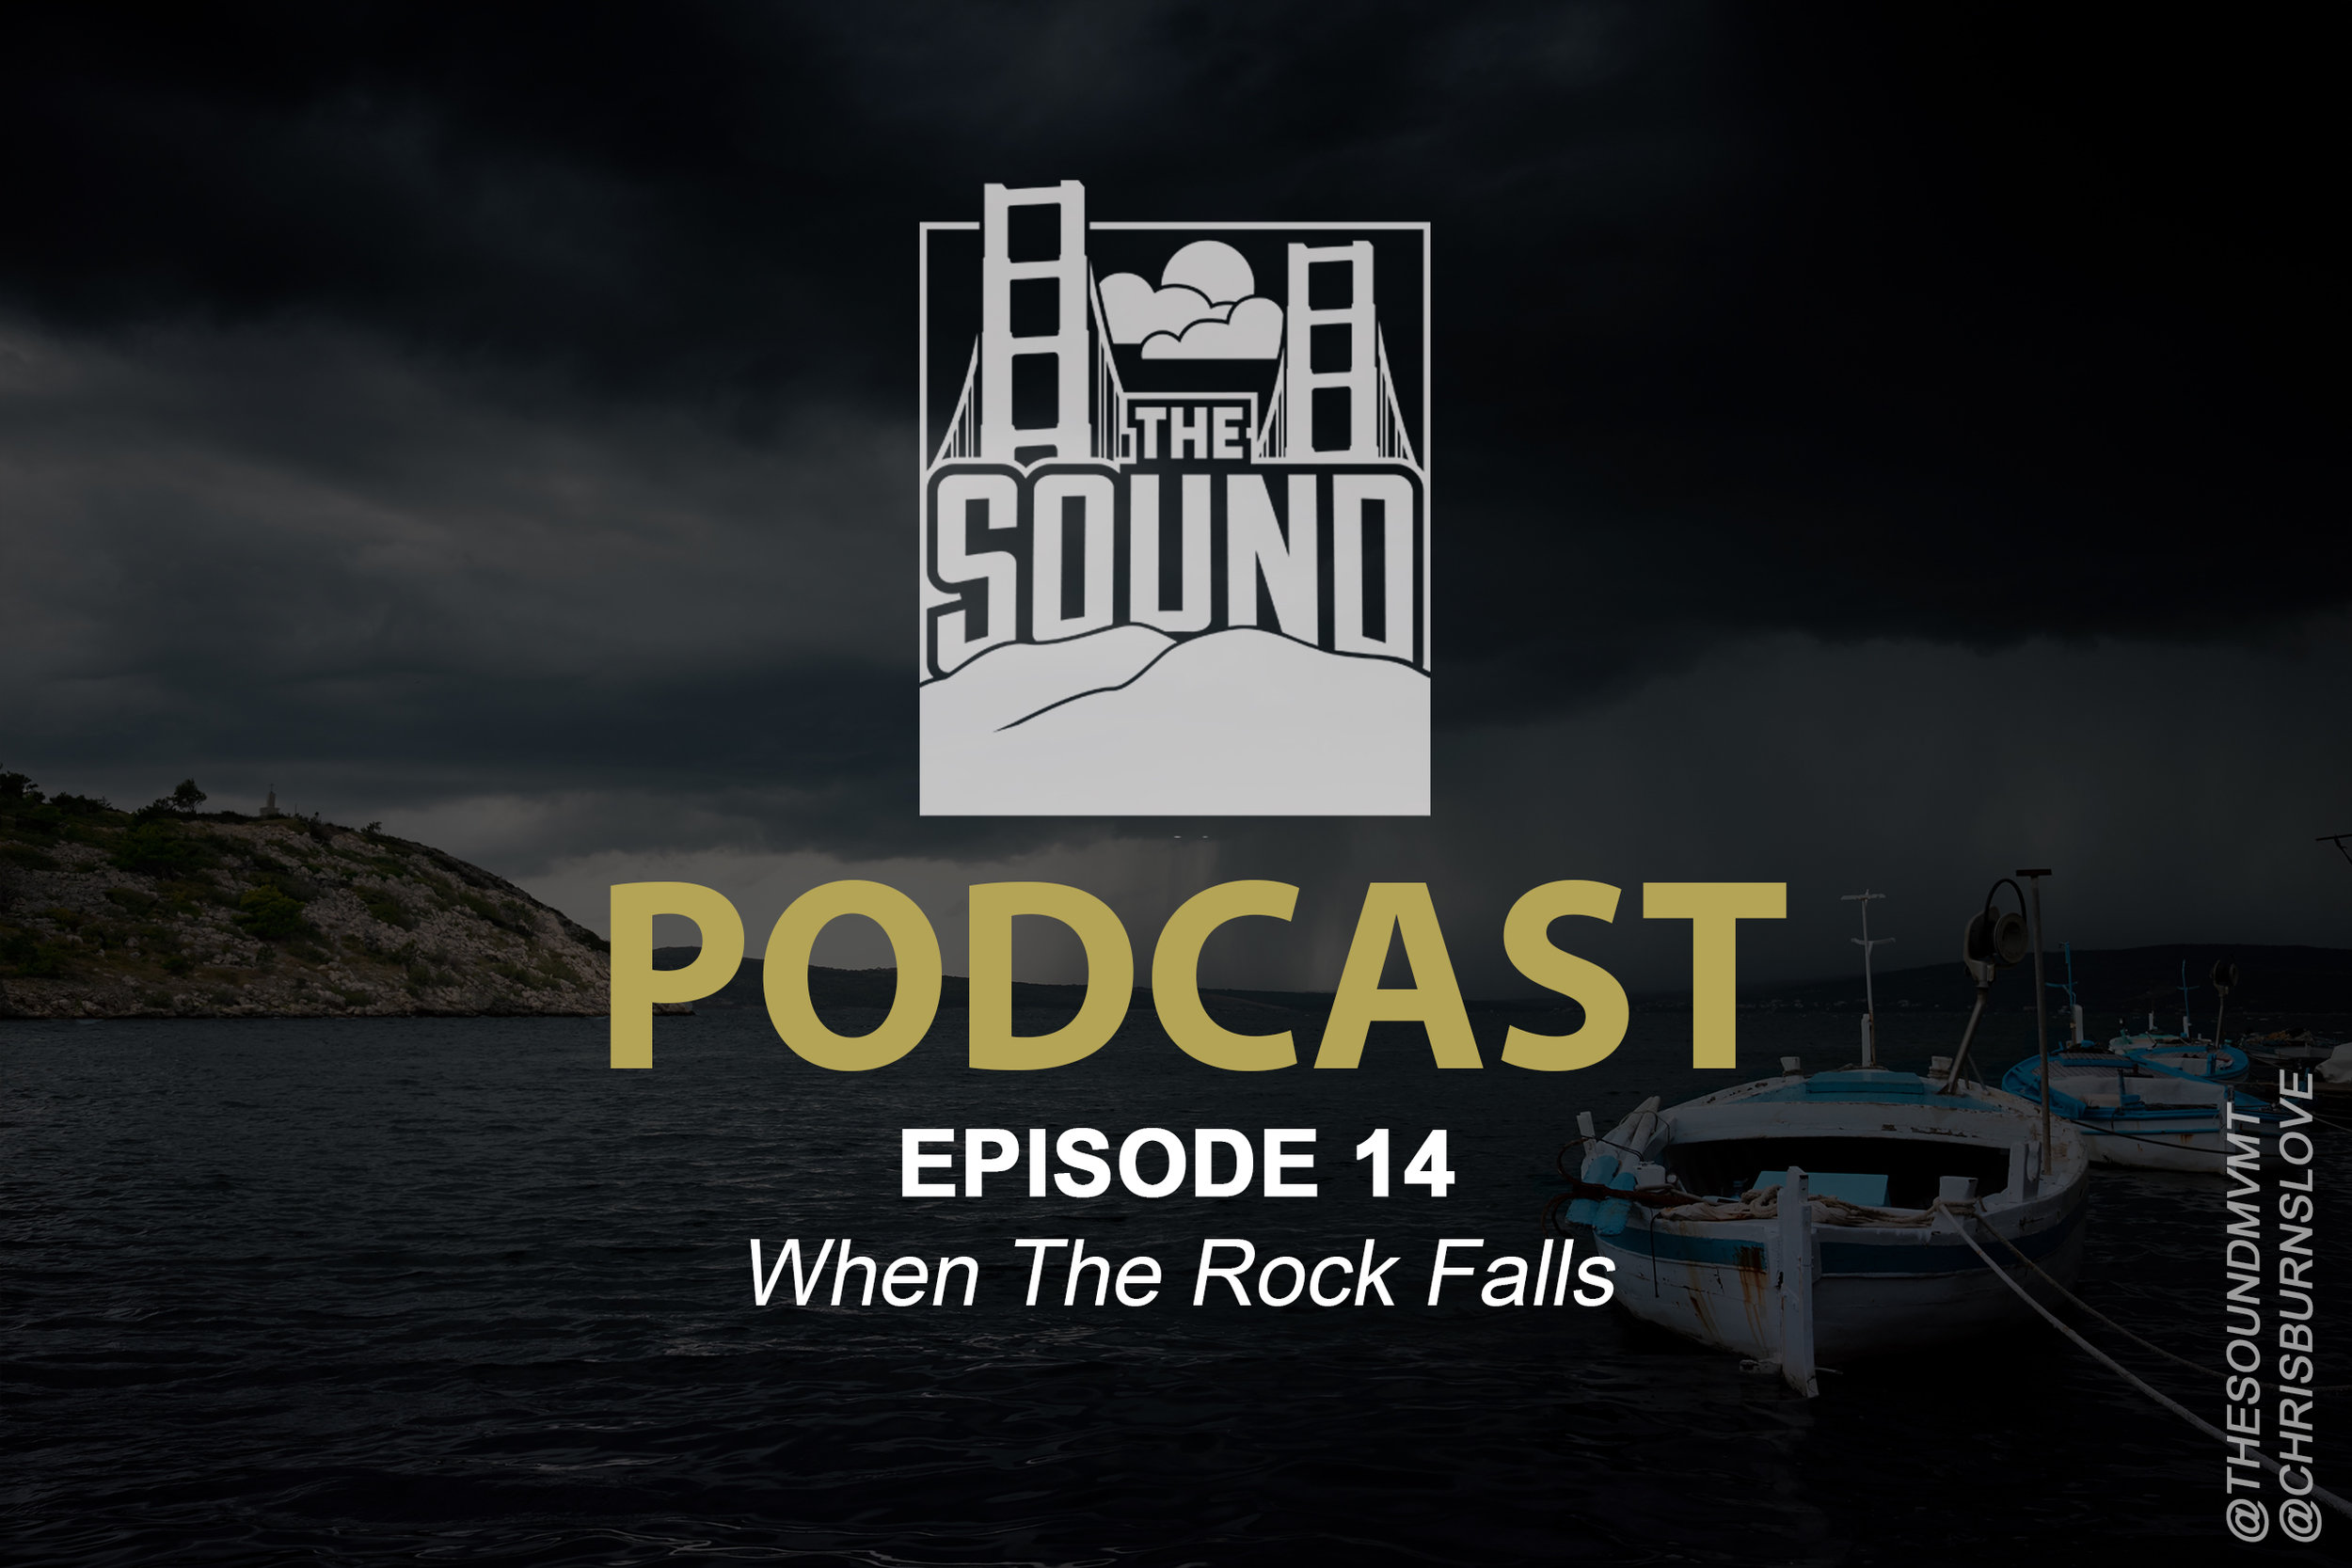 PODCAST — THE SOUND